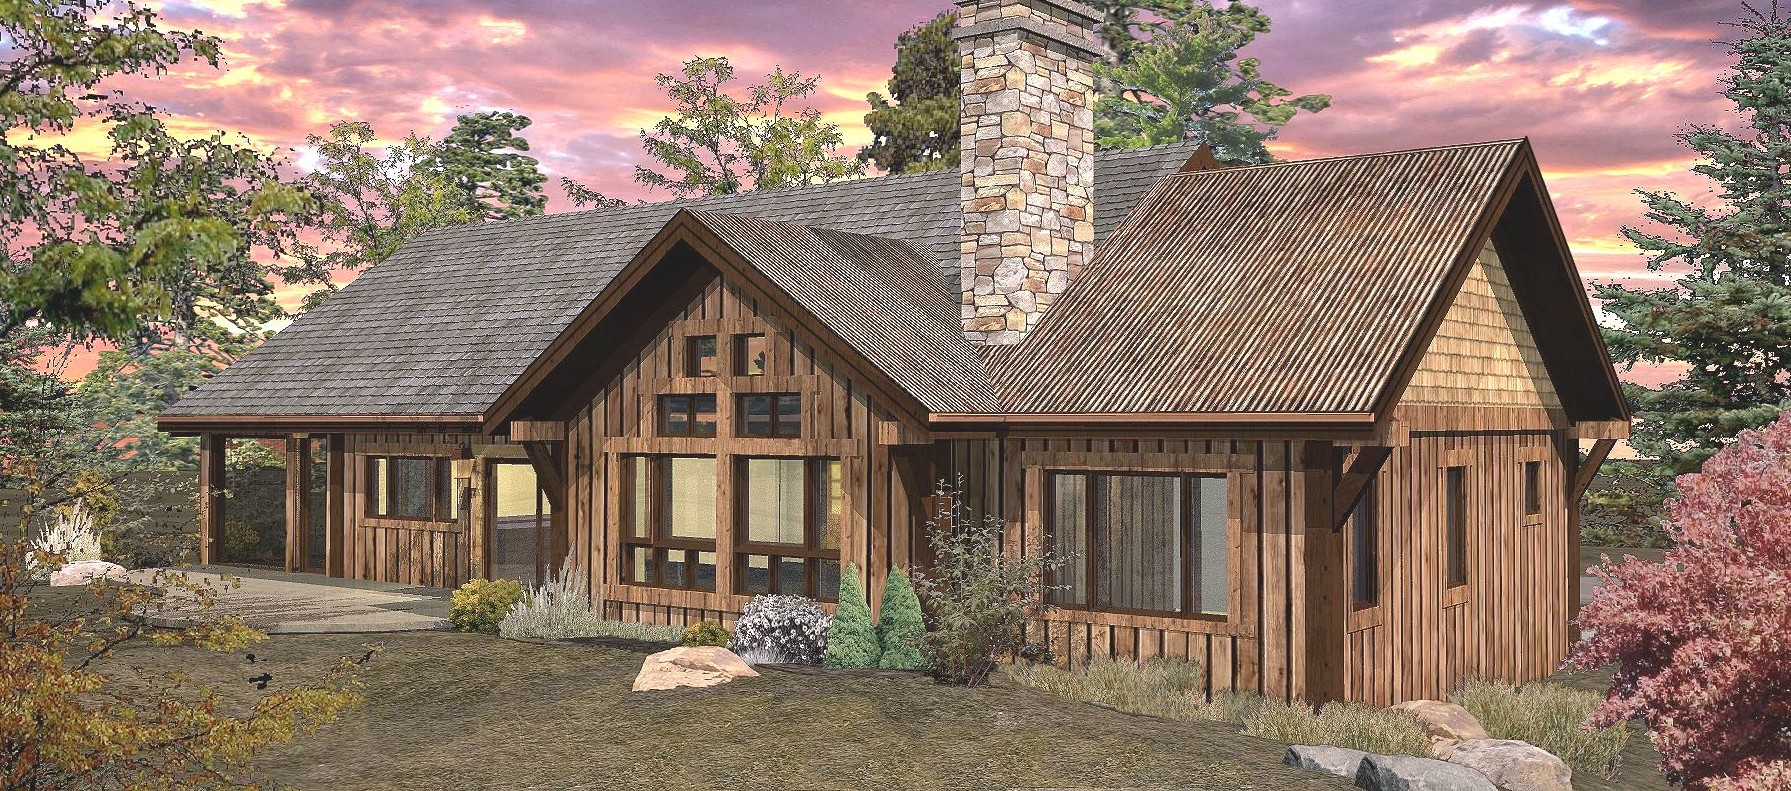 Pinecone - Rear Rendering by Wisconsin Log Homes 2